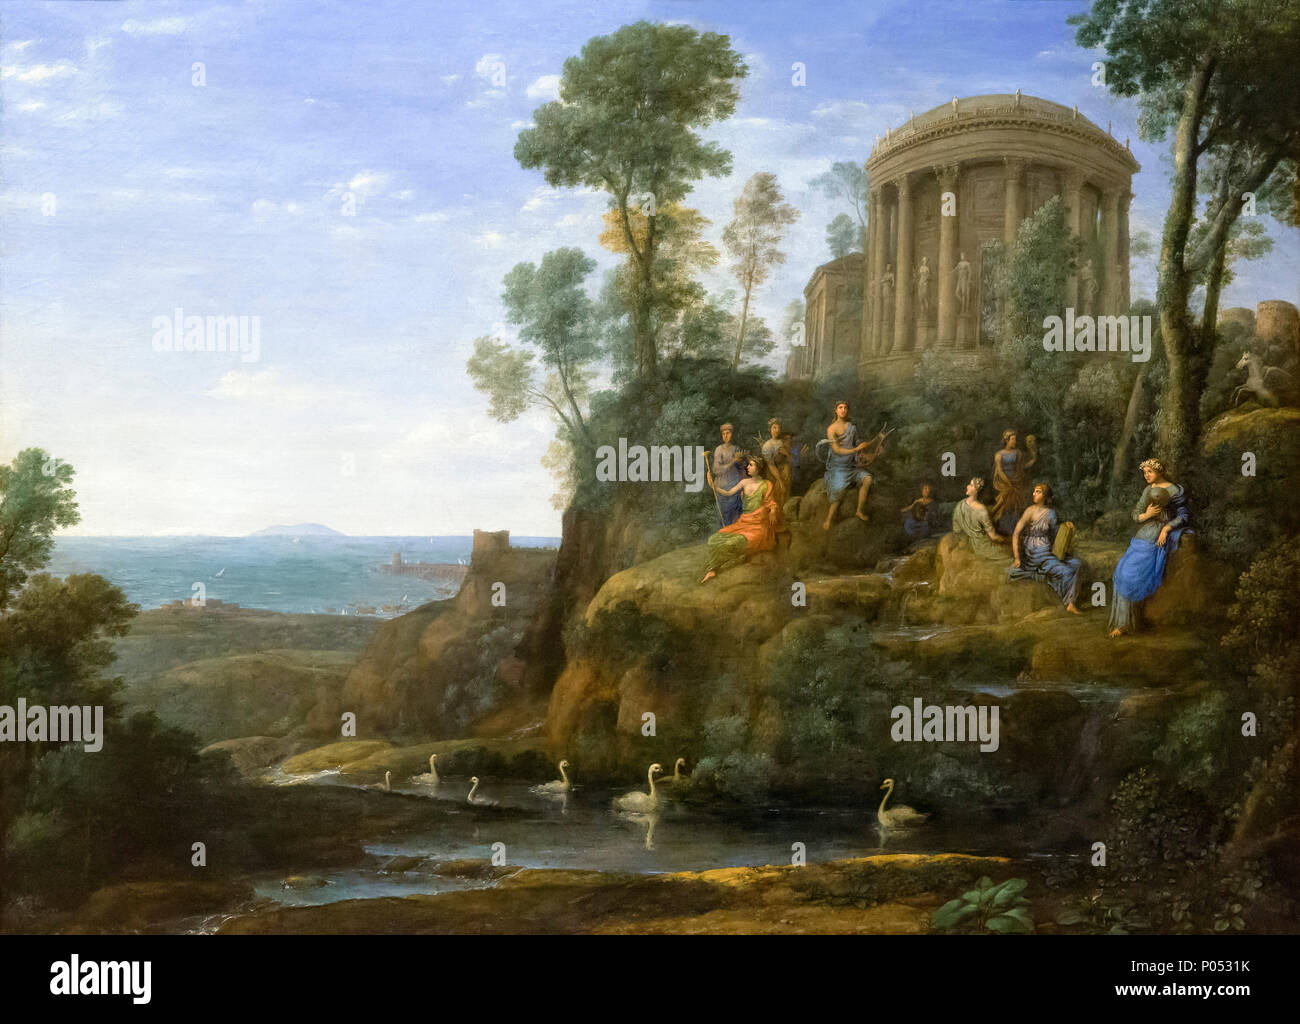 Apollo and the Muses on Mount Helicon, Claude Lorrain, 1680, Museum of Fine Arts, Boston, Mass, USA, North America - Stock Image